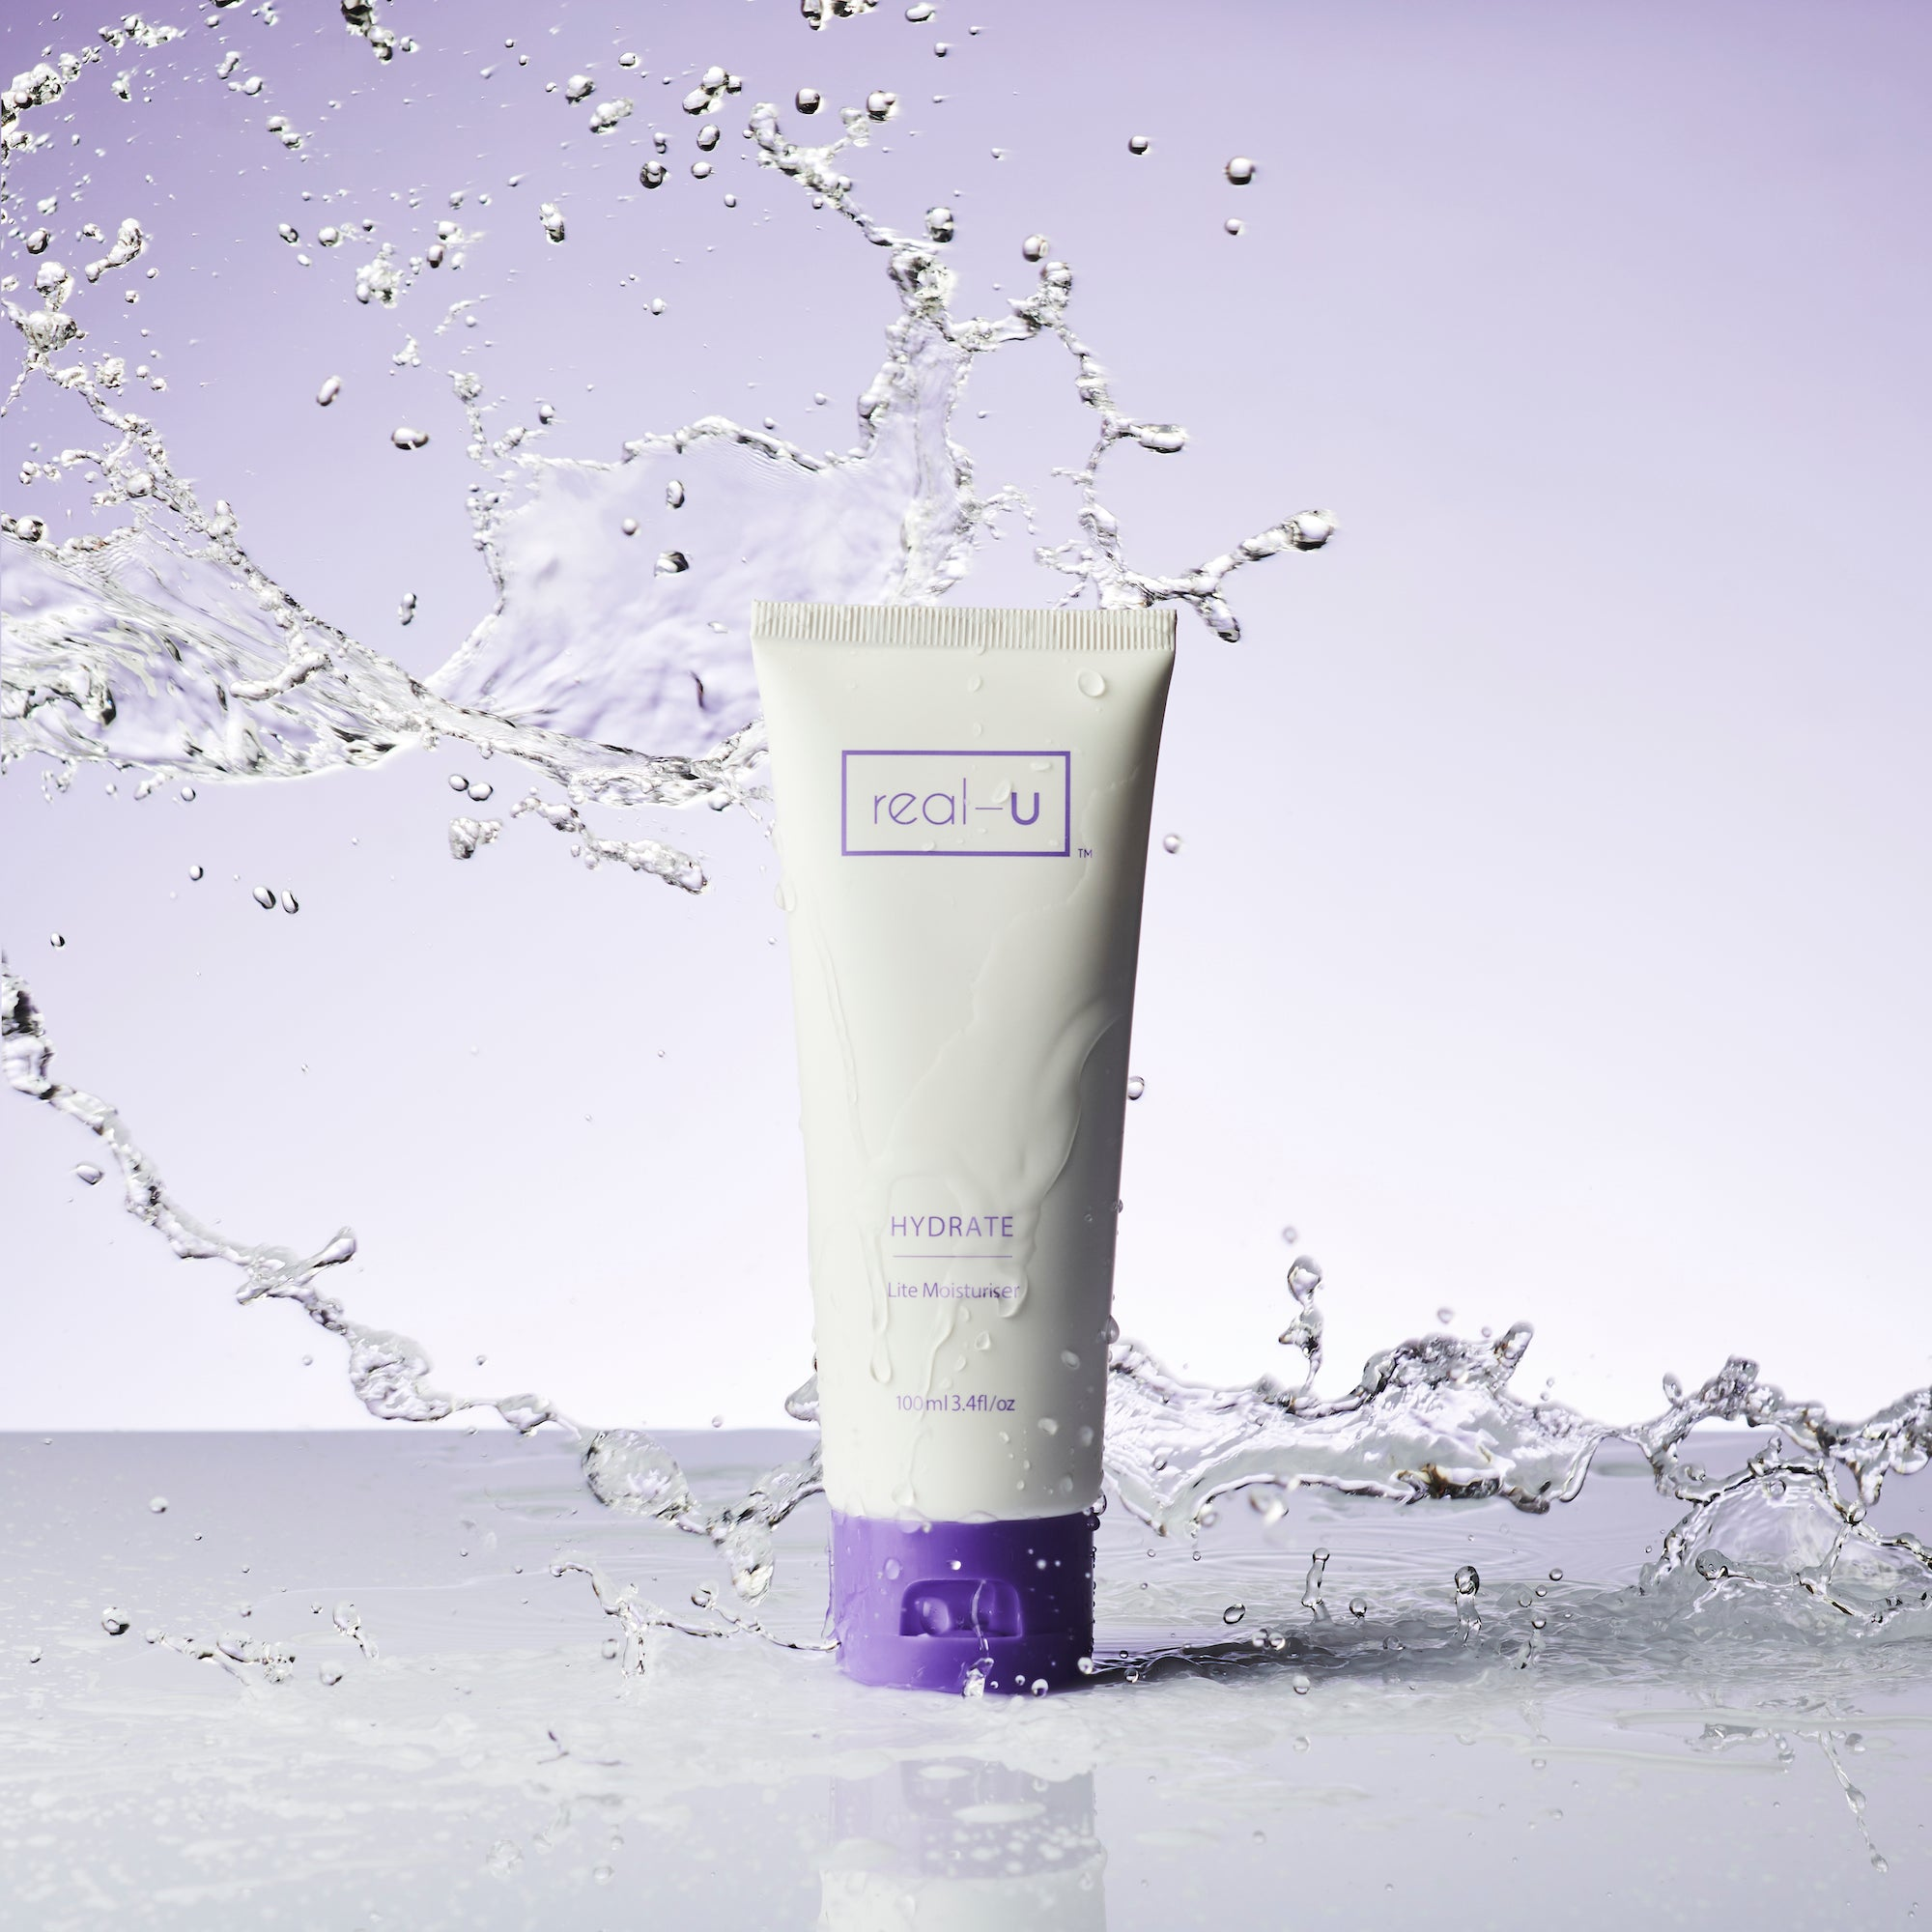 real-u HYDRATE Lite Moisturiser Step 3 of our 3-Step acne skincare program